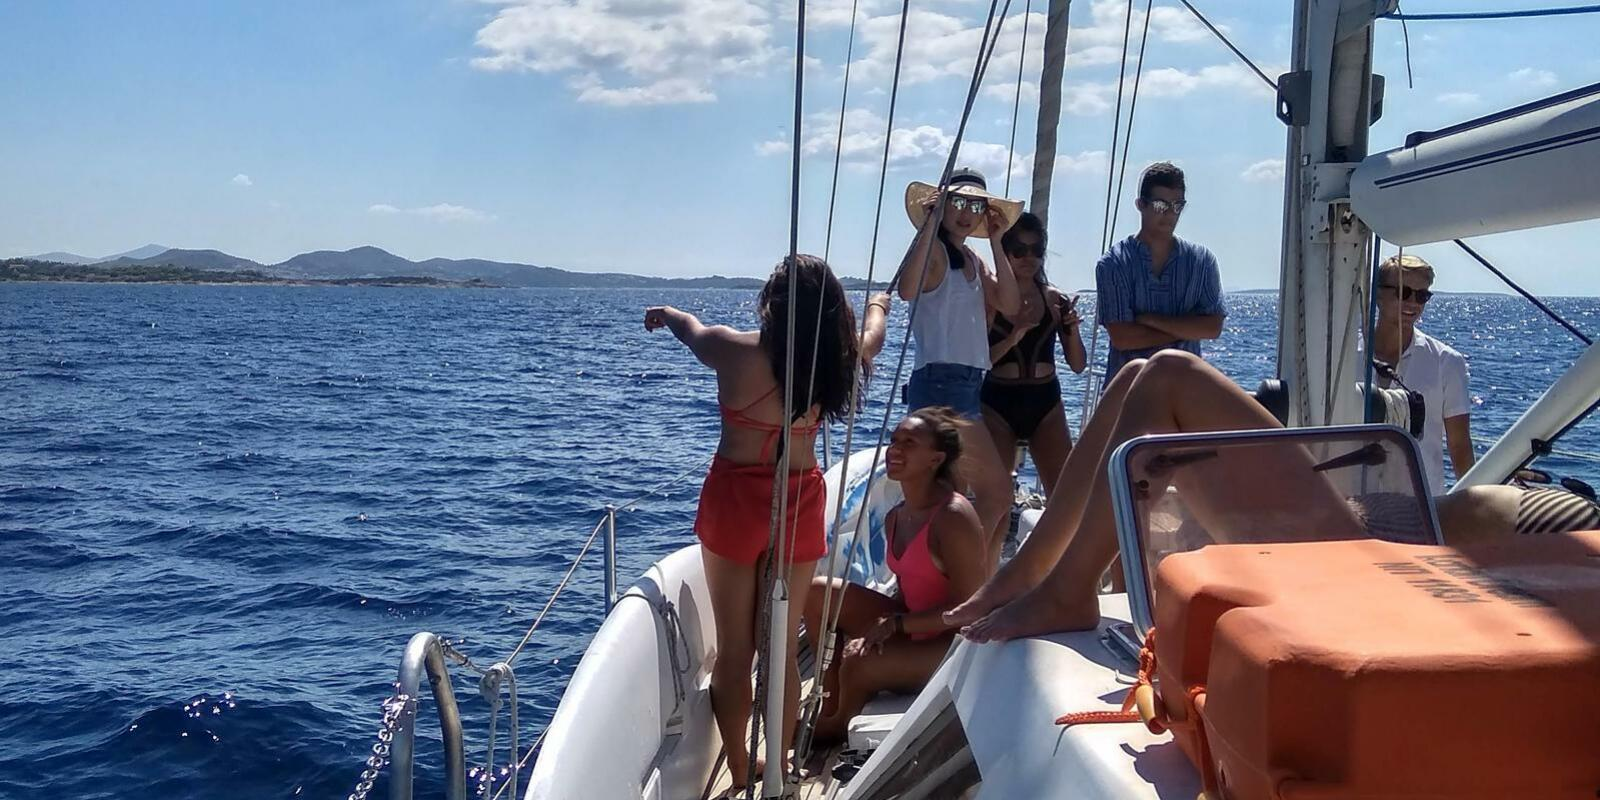 Come and sea! A great sailing trip to Greek islands! The land of the Gods!